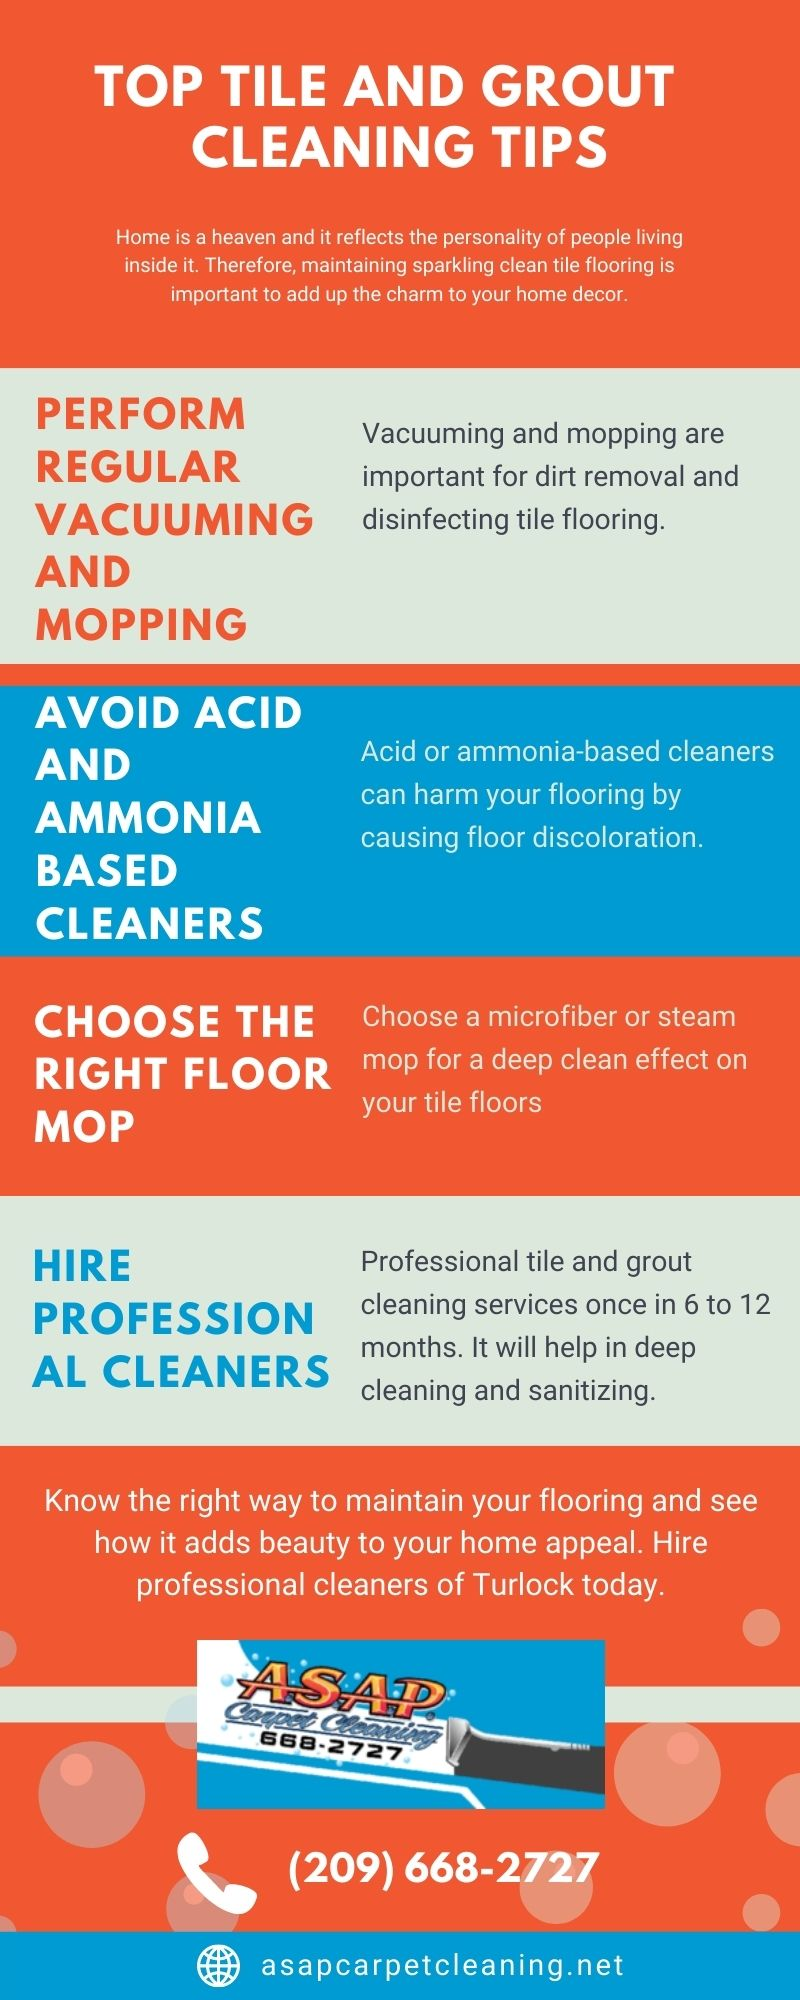 Top Tile And Grout Cleaning Tips [Infographic]